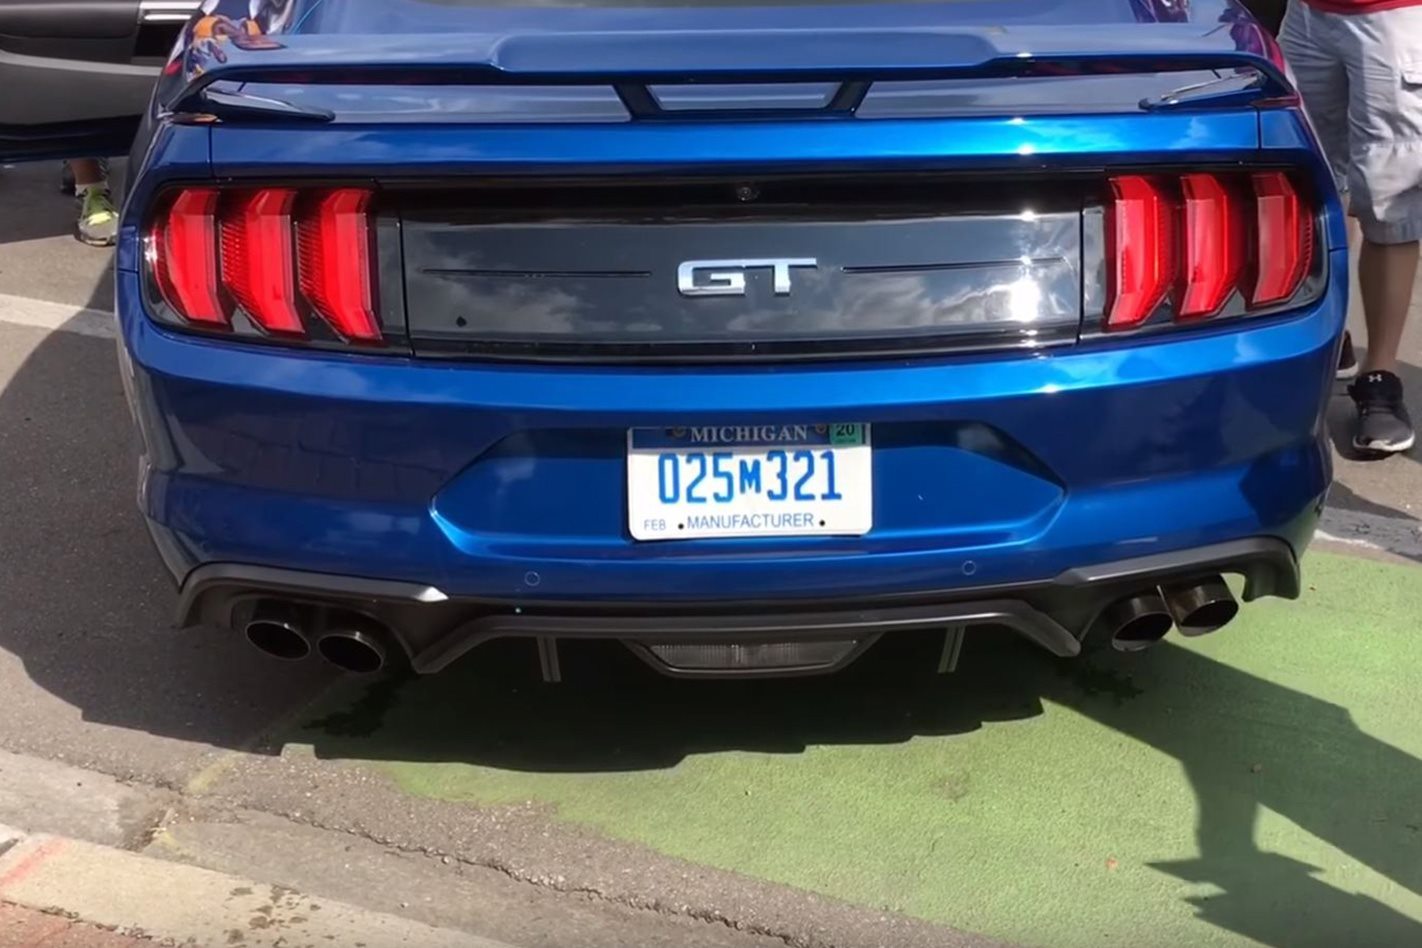 2018 ford mustang gt exhaust modes in detail rh whichcar com au 2017 ford mustang gt exhaust ford mustang gt exhaust uk